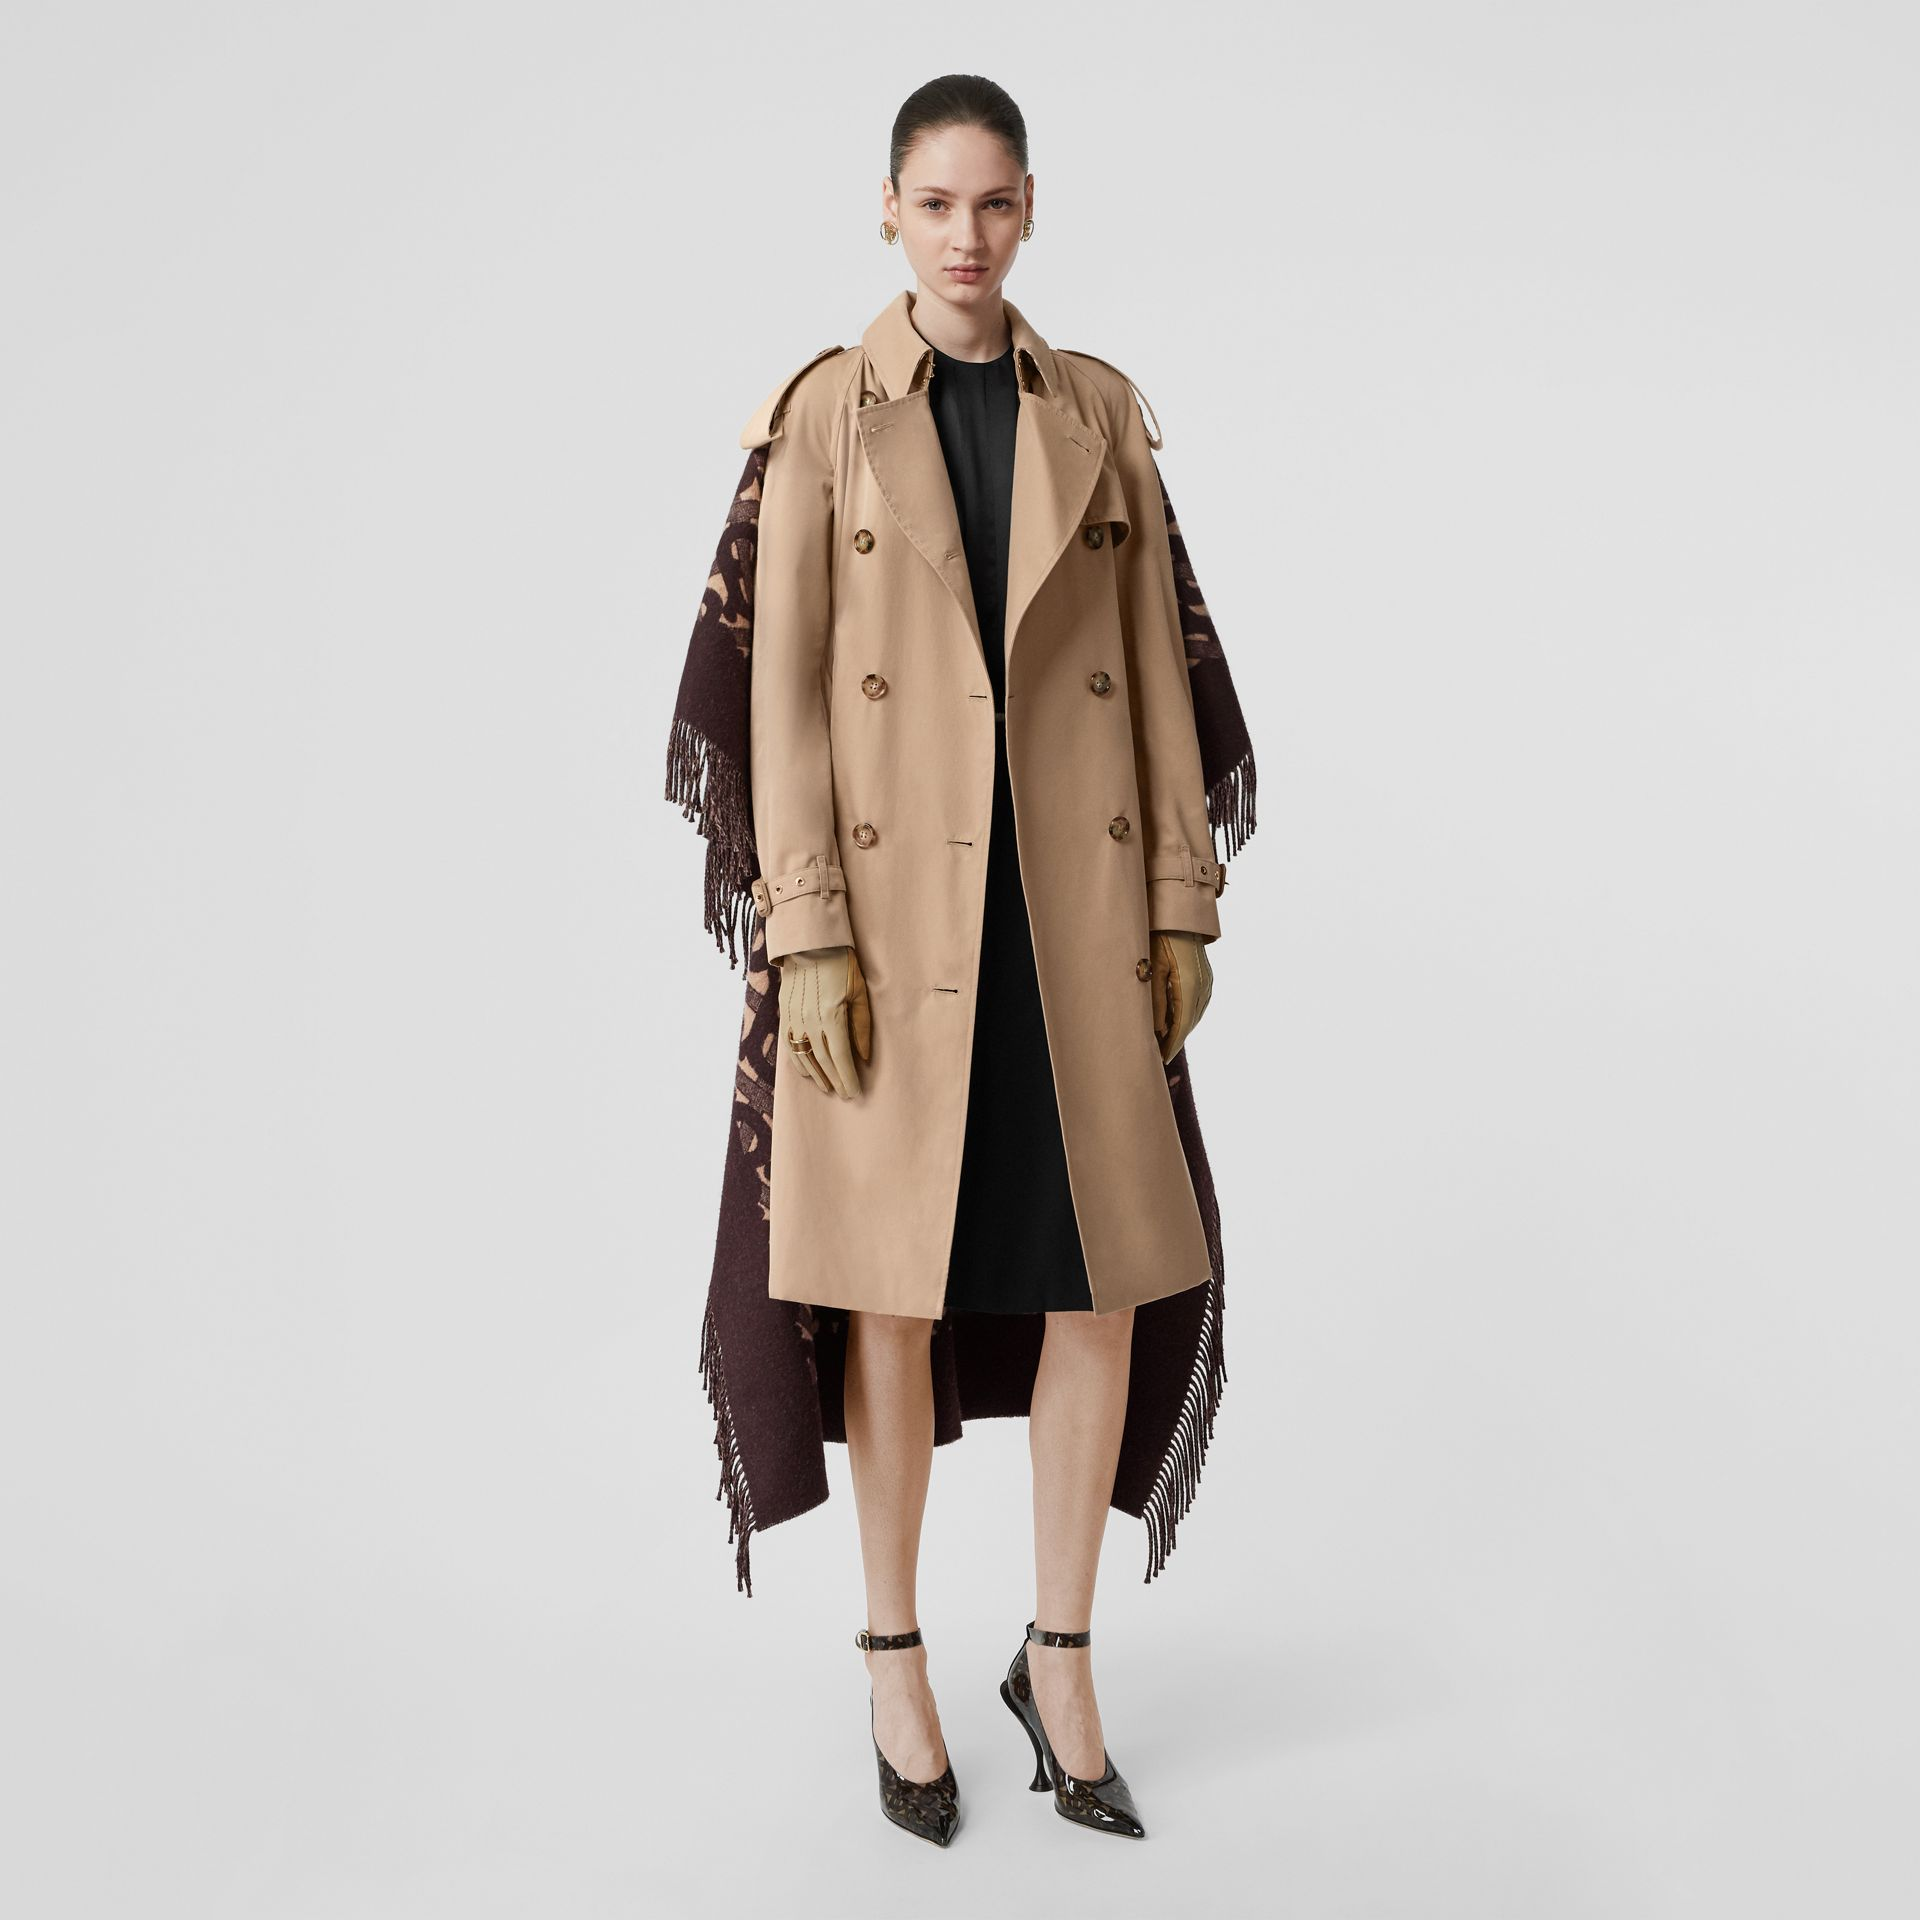 Blanket Detail Cotton Gabardine Trench Coat in Honey - Women | Burberry - gallery image 7